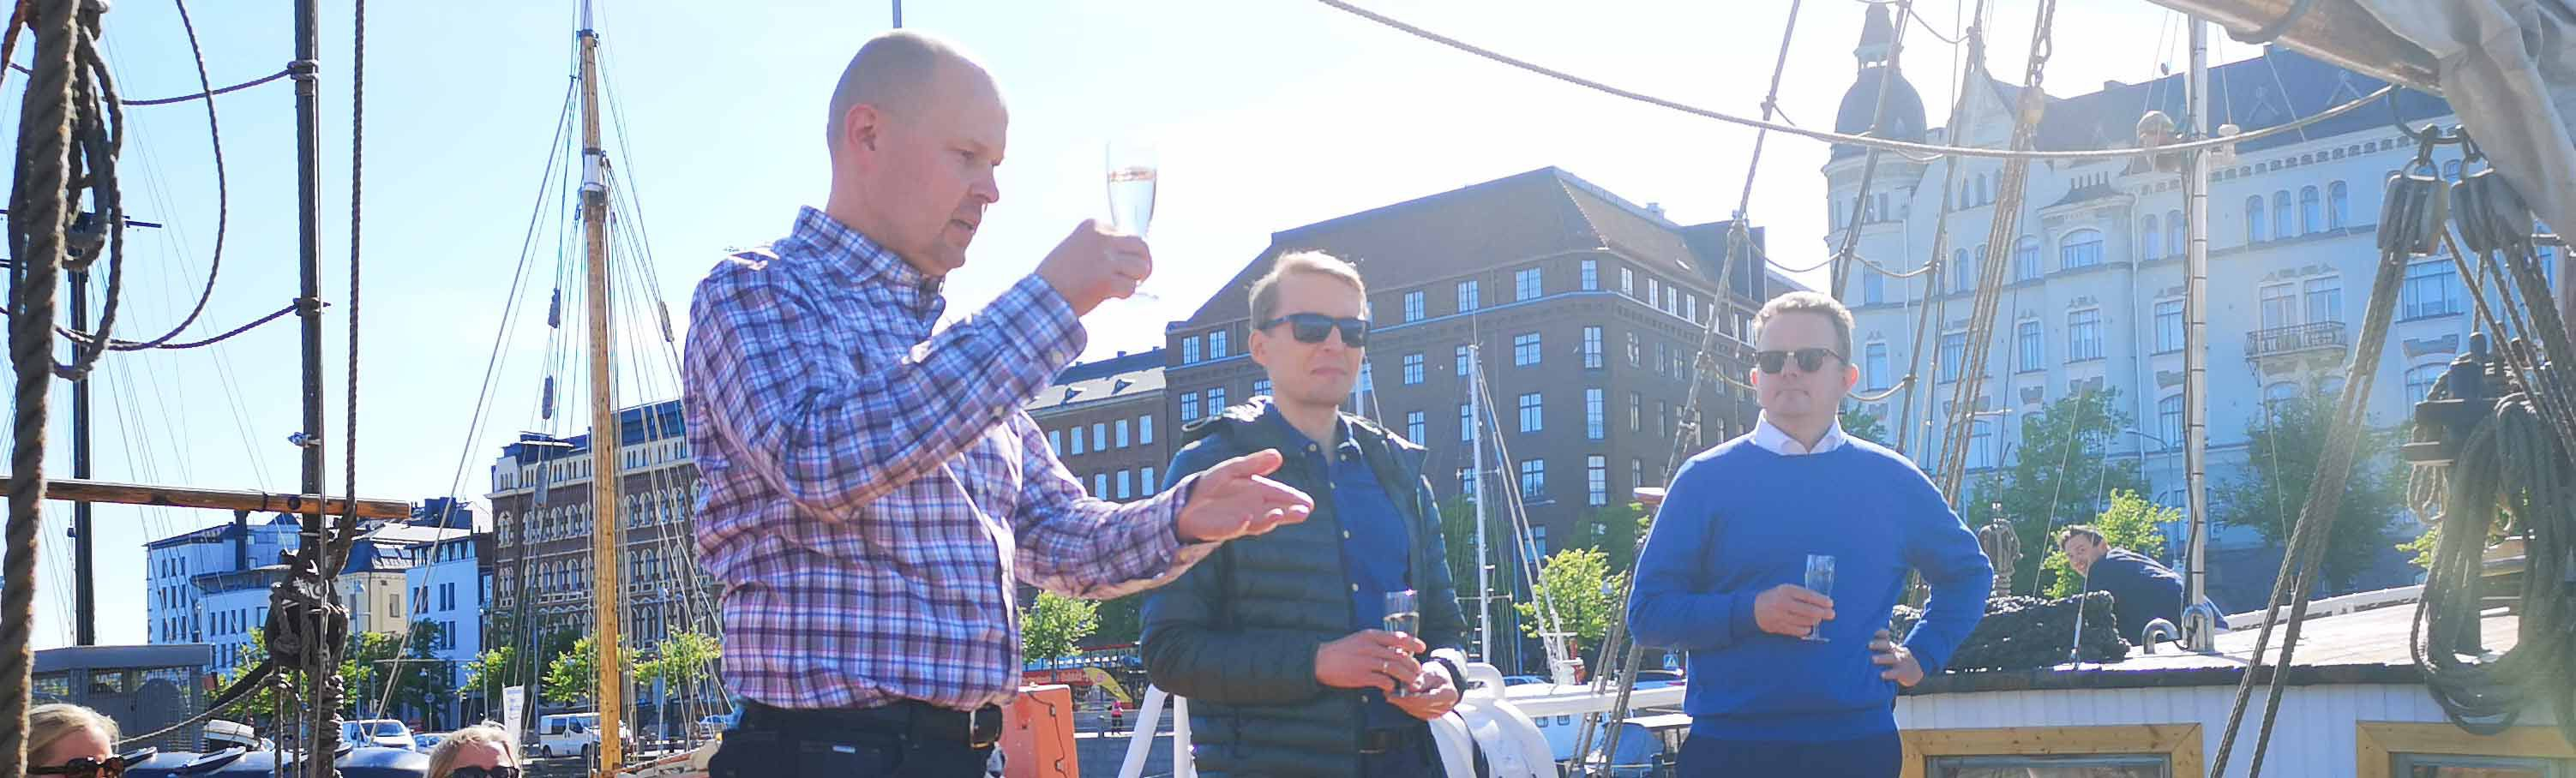 The founding partners Petri Heino, Marko Happonen, and Roy Nurmi welcome personnel and their avecs to SprintIT's 5th anniversary party on a sailing boat in Helsinki.